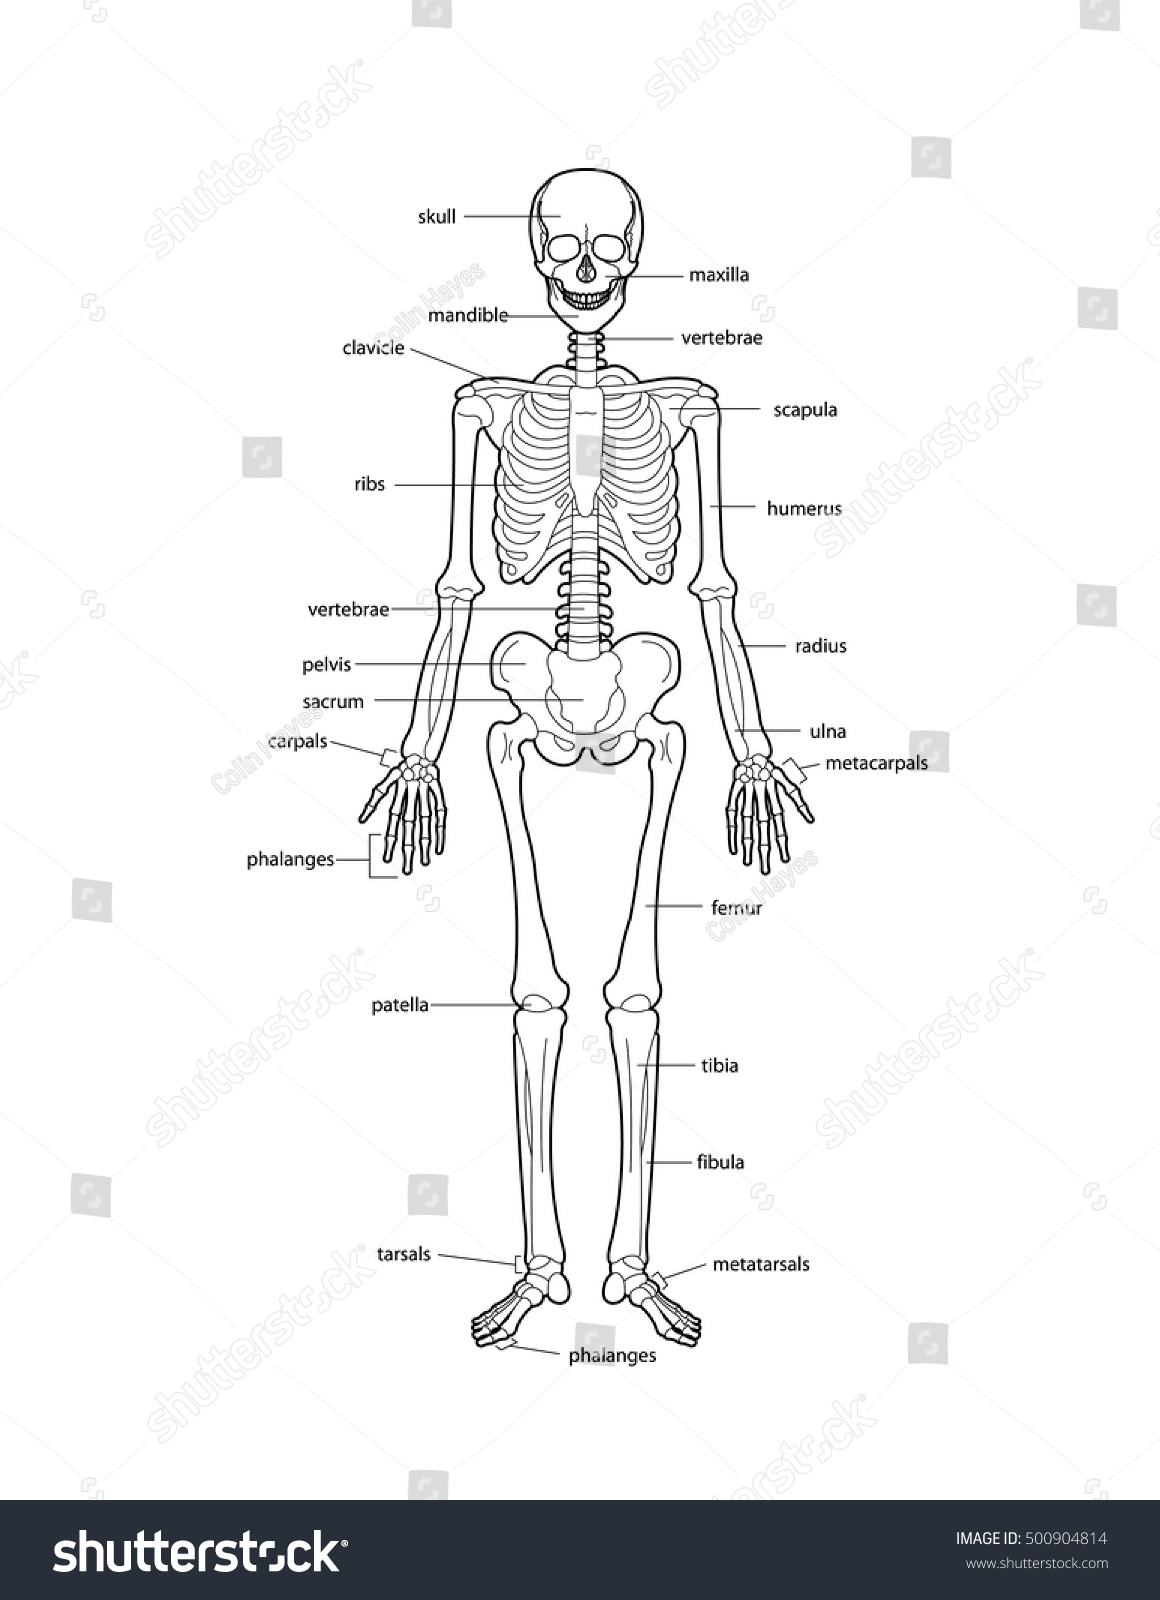 human skeleton bones labeled stock vector 500904814 - shutterstock, Skeleton